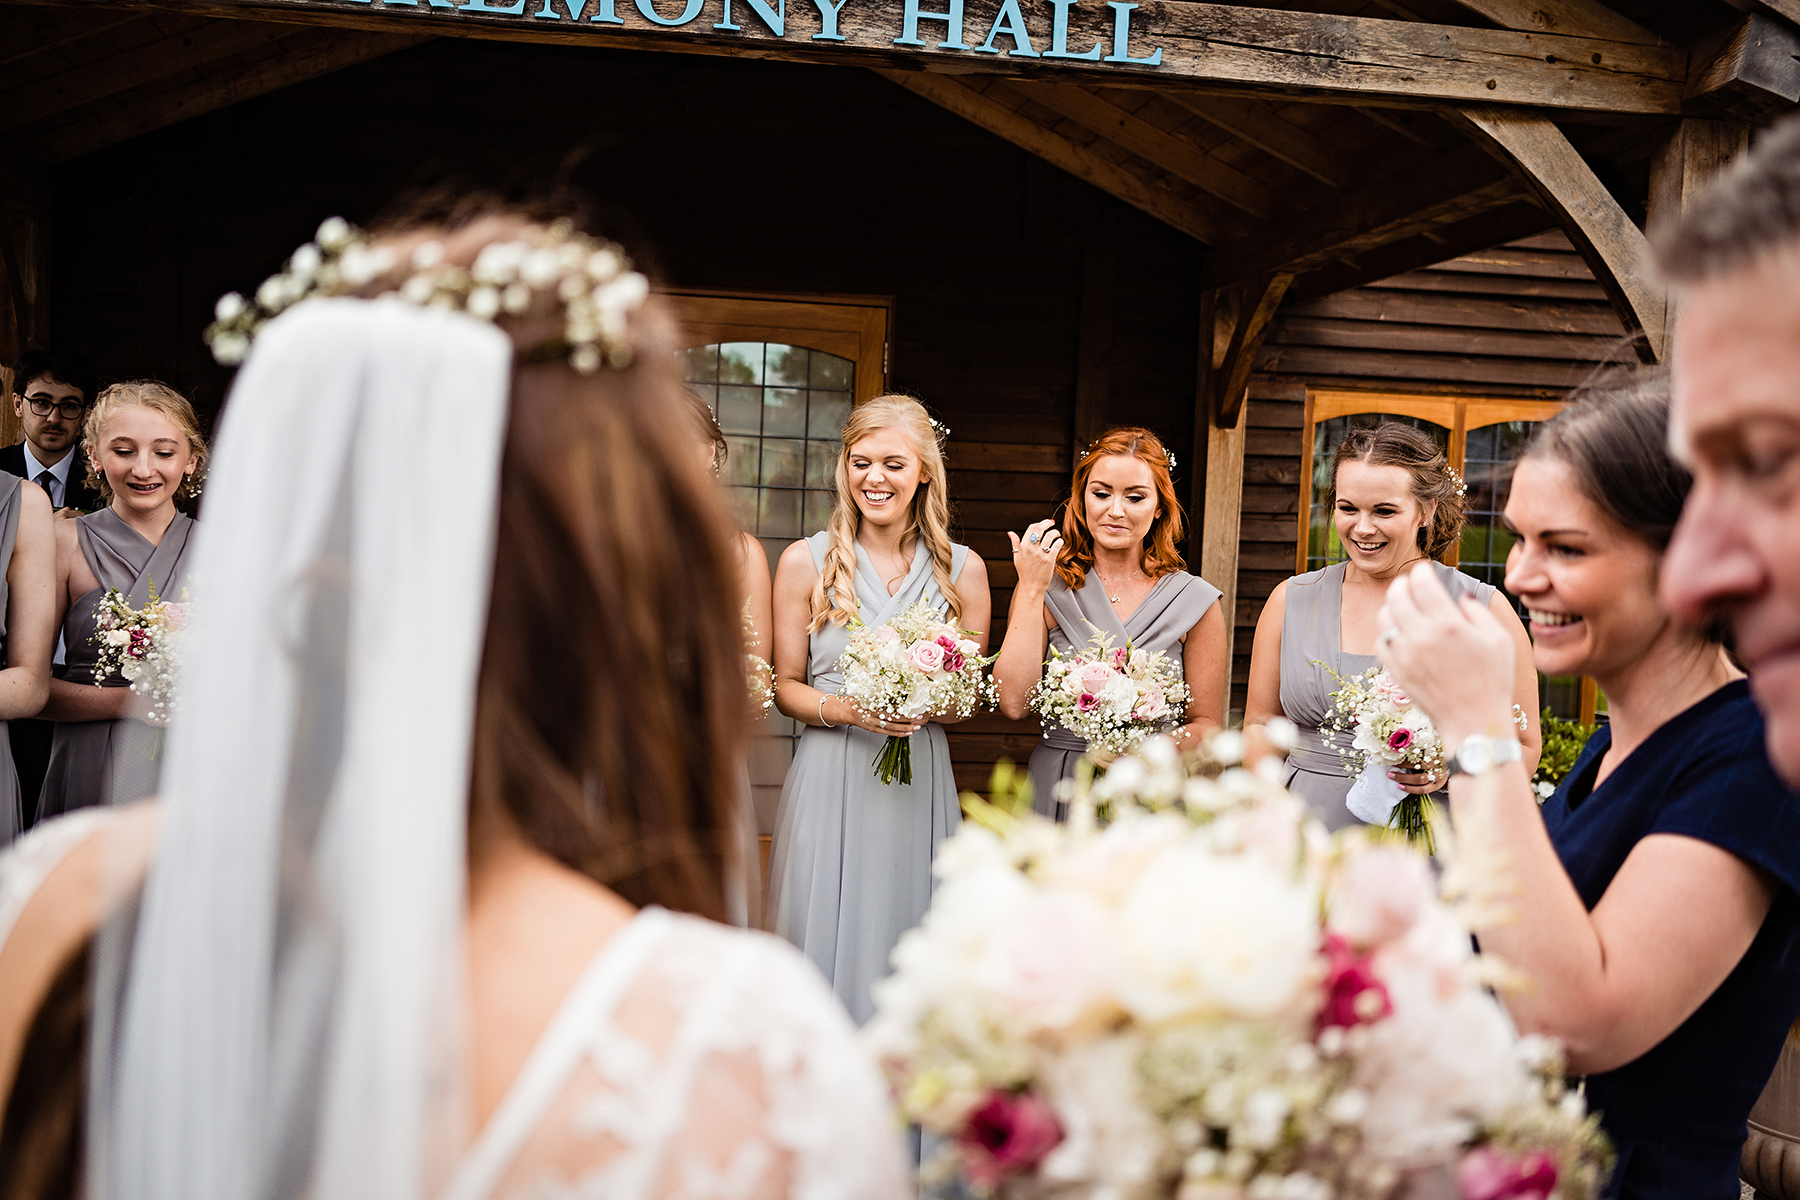 bridesmaids awaiting bride at the ceremony barn